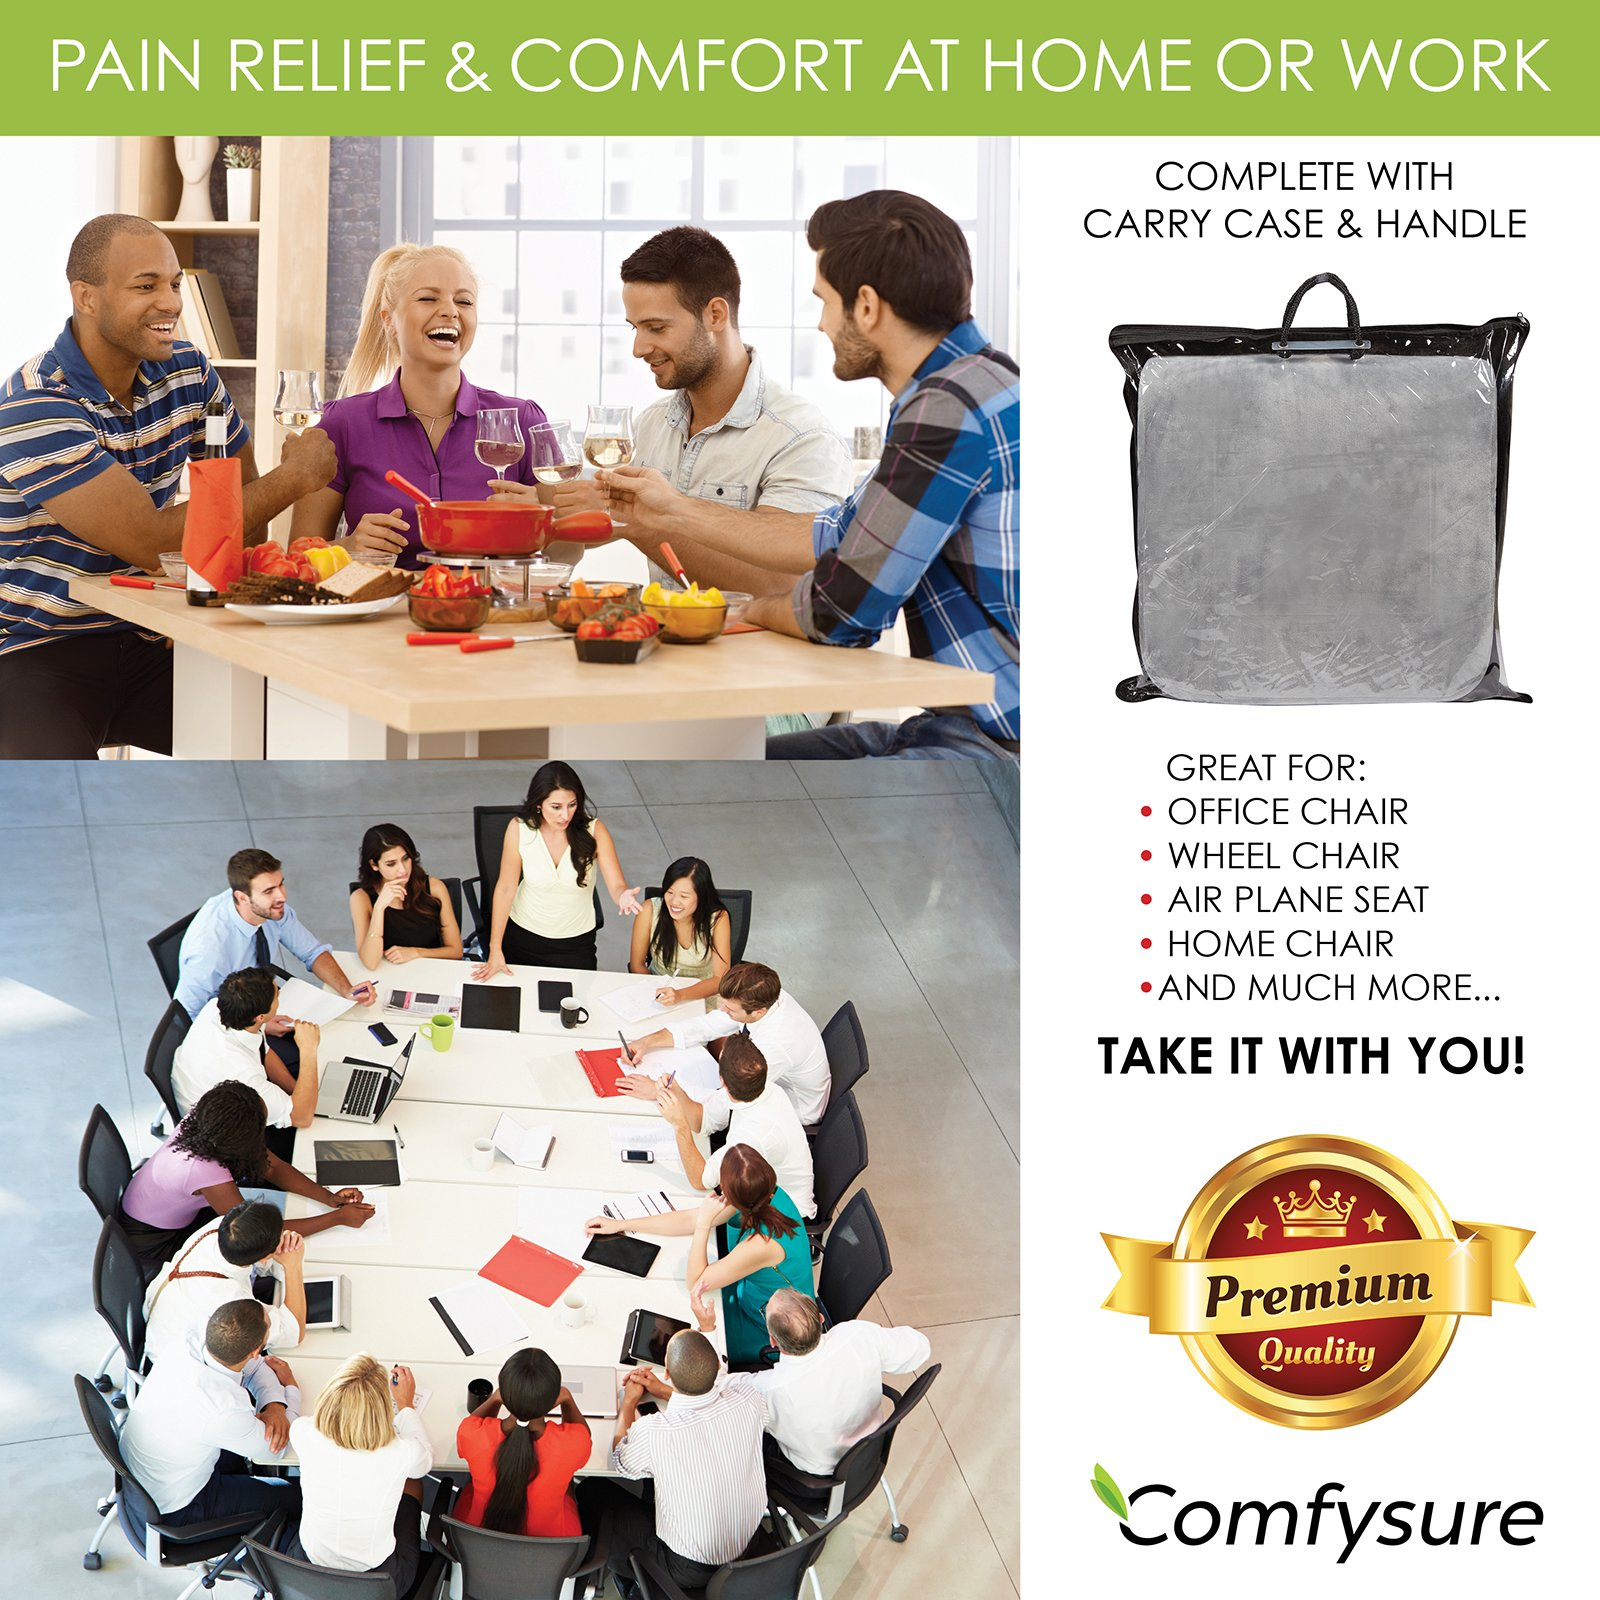 ComfySure Extra Large Firm Seat Cushion Pad for Bariatric Overweight Users - Firm Memory Foam Chair Support Pillow for Wheelchair, Office & Car 19''x18''x3'' (Grey) by ComfySure